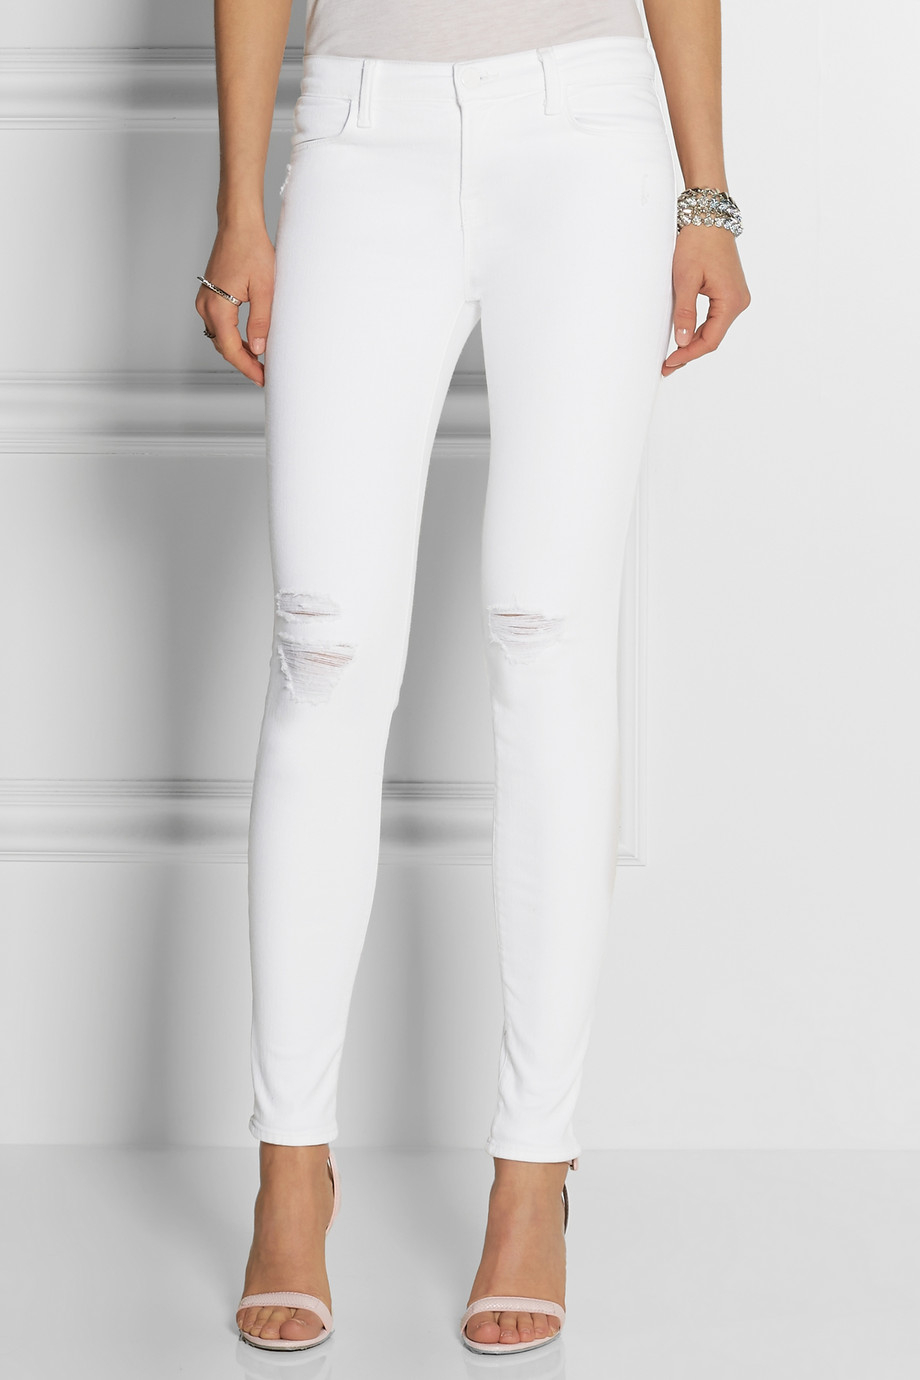 J brand 620 Super Skinny Distressed Mid-Rise Jeans in White | Lyst